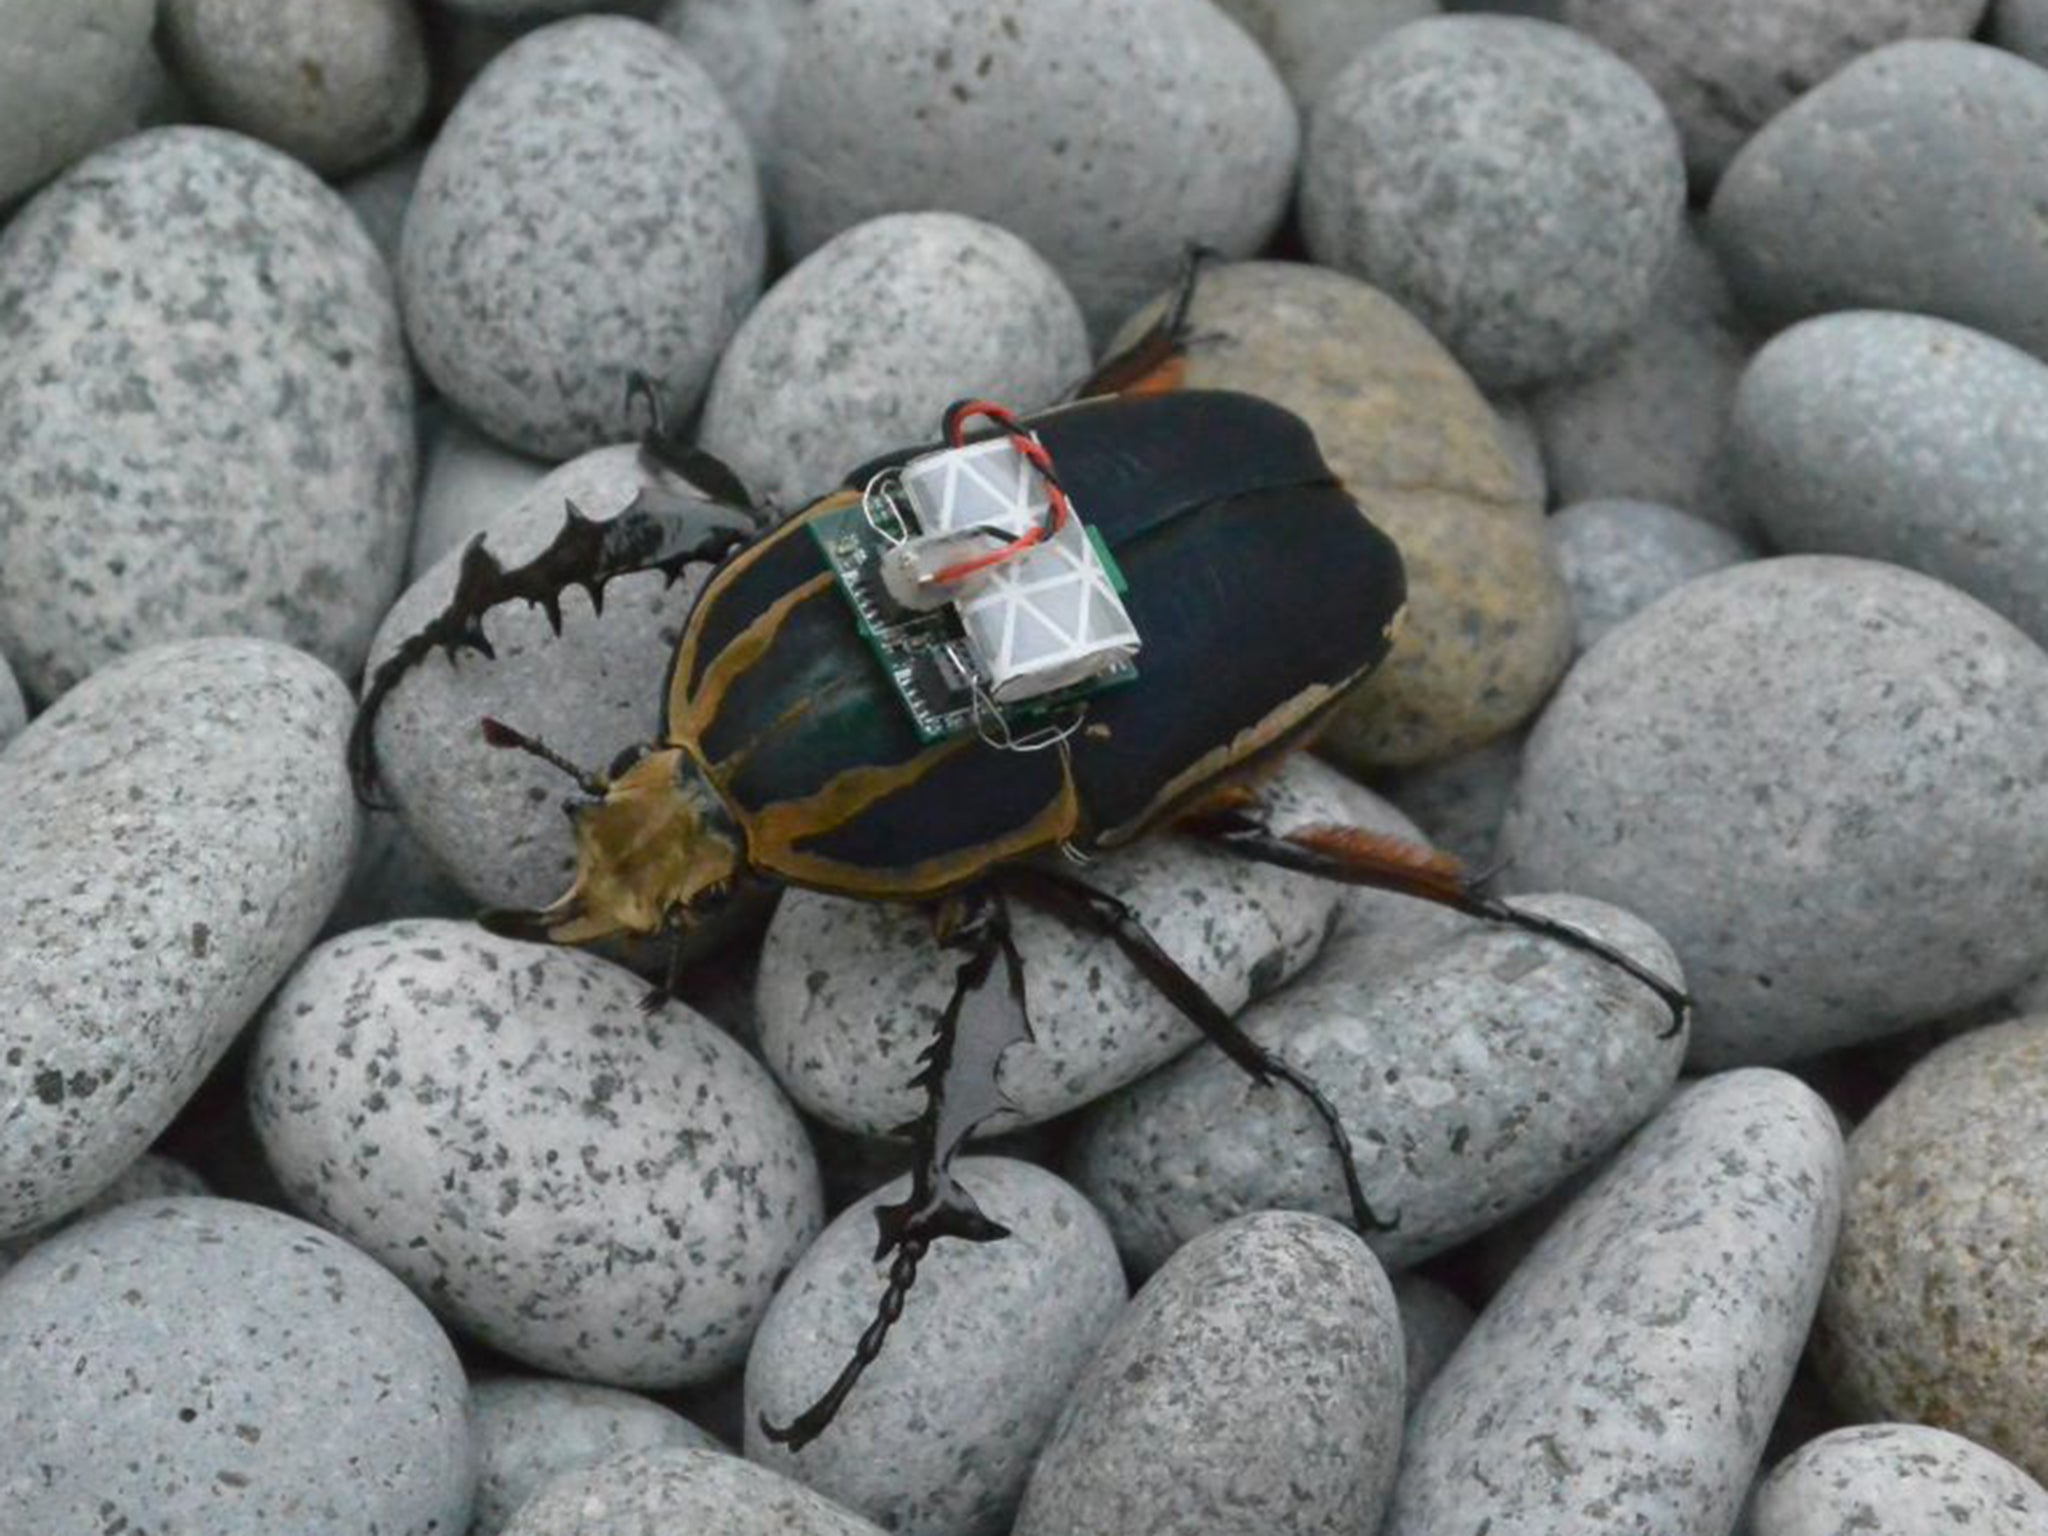 Scientists Manage To Control Flight Of Cyborg Beetles For The Micro Transmitter Bug First Time Independent